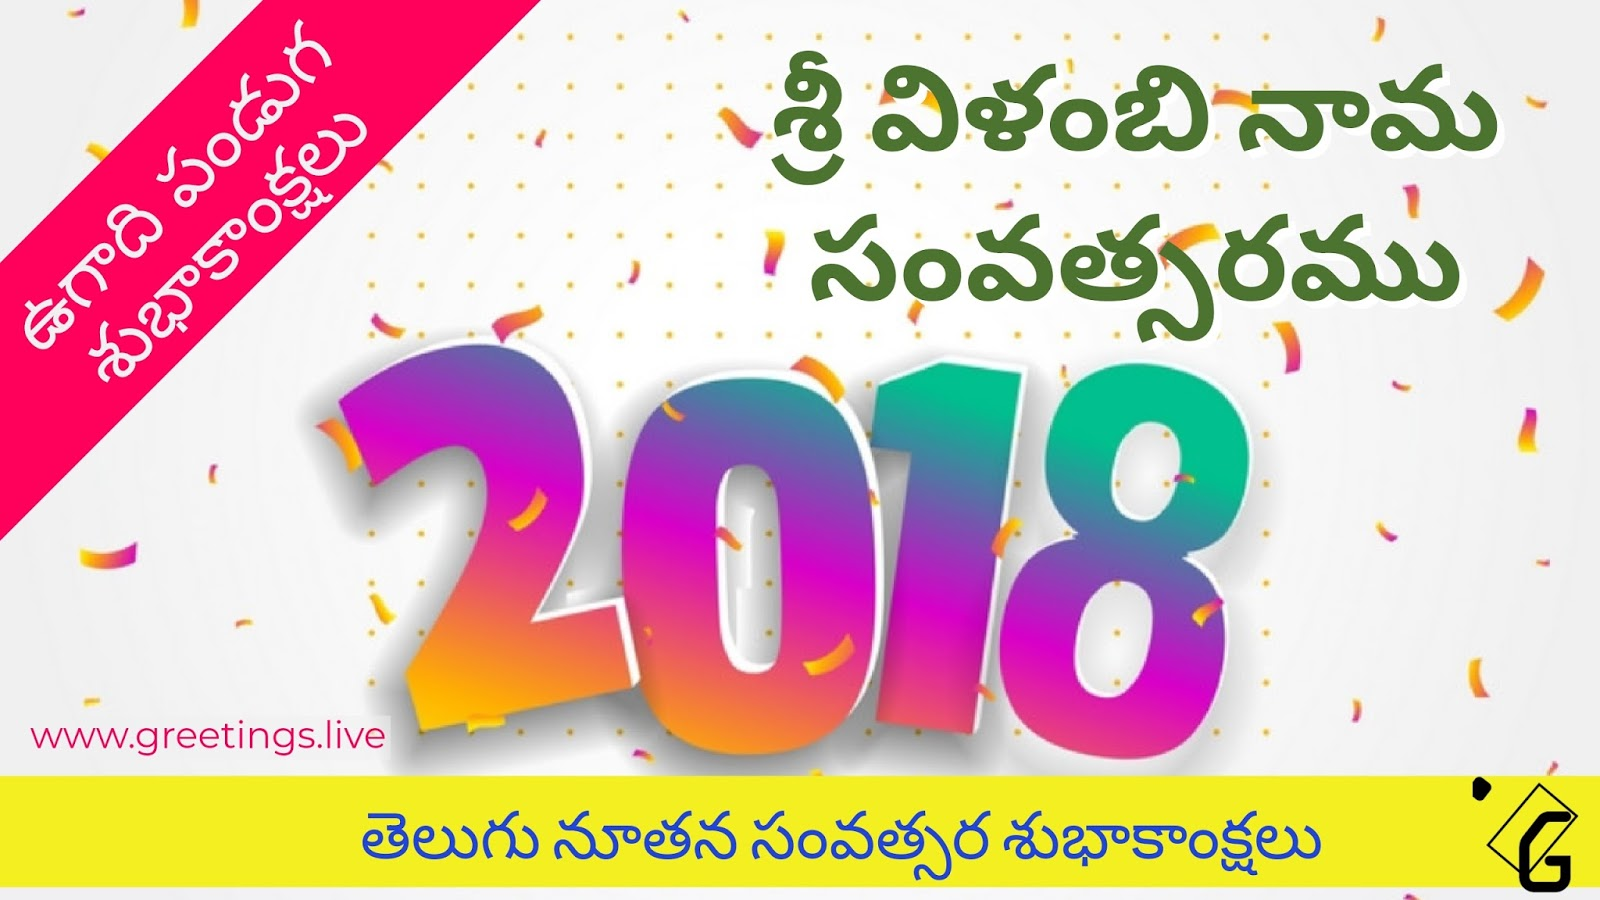 Greetingsve free hd images to express wishes all occasions sri vilambi nama samvatsara telugu ugadi images 2018 m4hsunfo